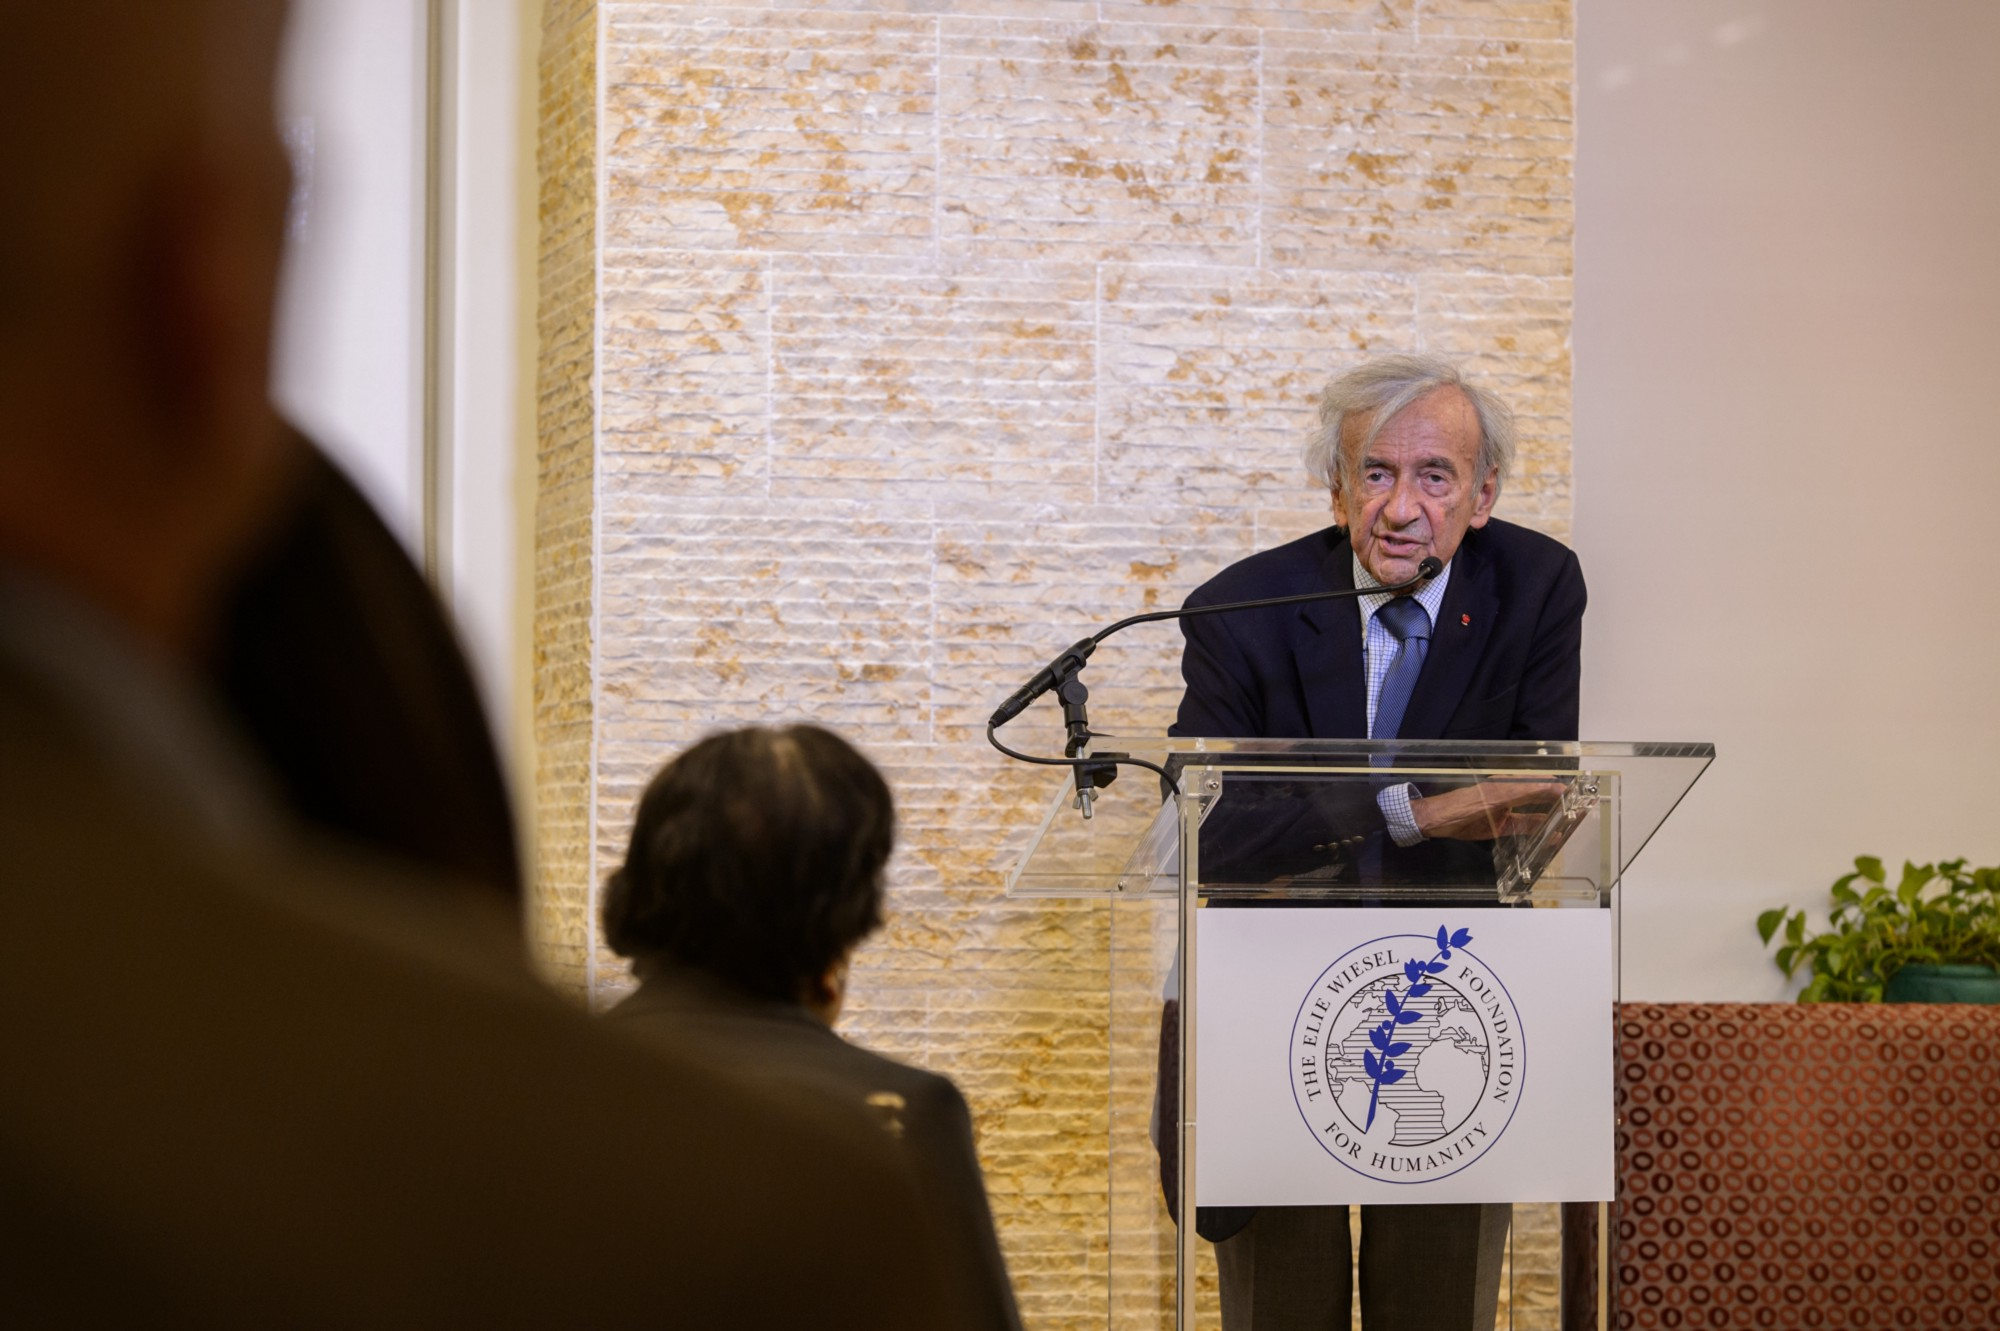 elie wiesel foundation ethics essay contest The elie wiesel prize in ethics essay contest is open to full - time junior and senior students to be considered, you must articulate with clarity an ethical issue.